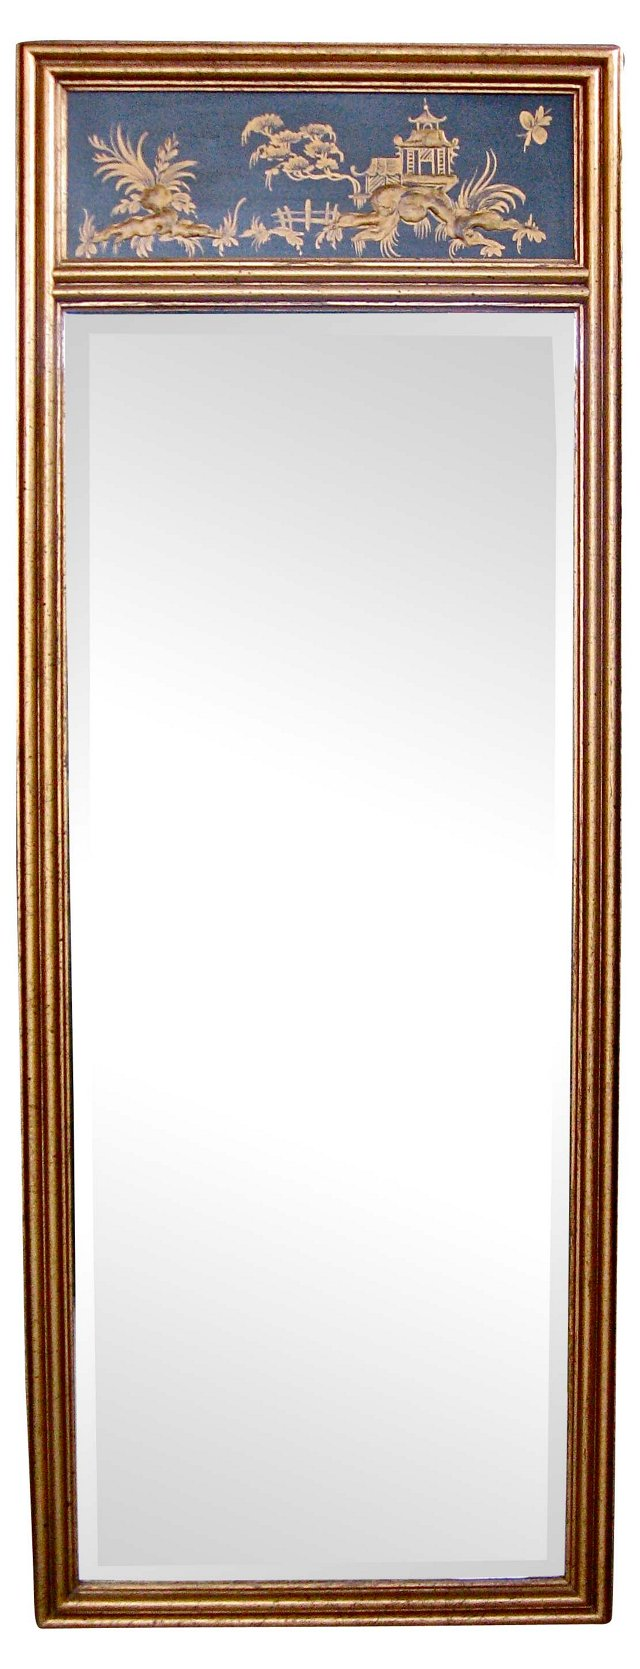 Chinoiserie-Style Trumeau Mirror